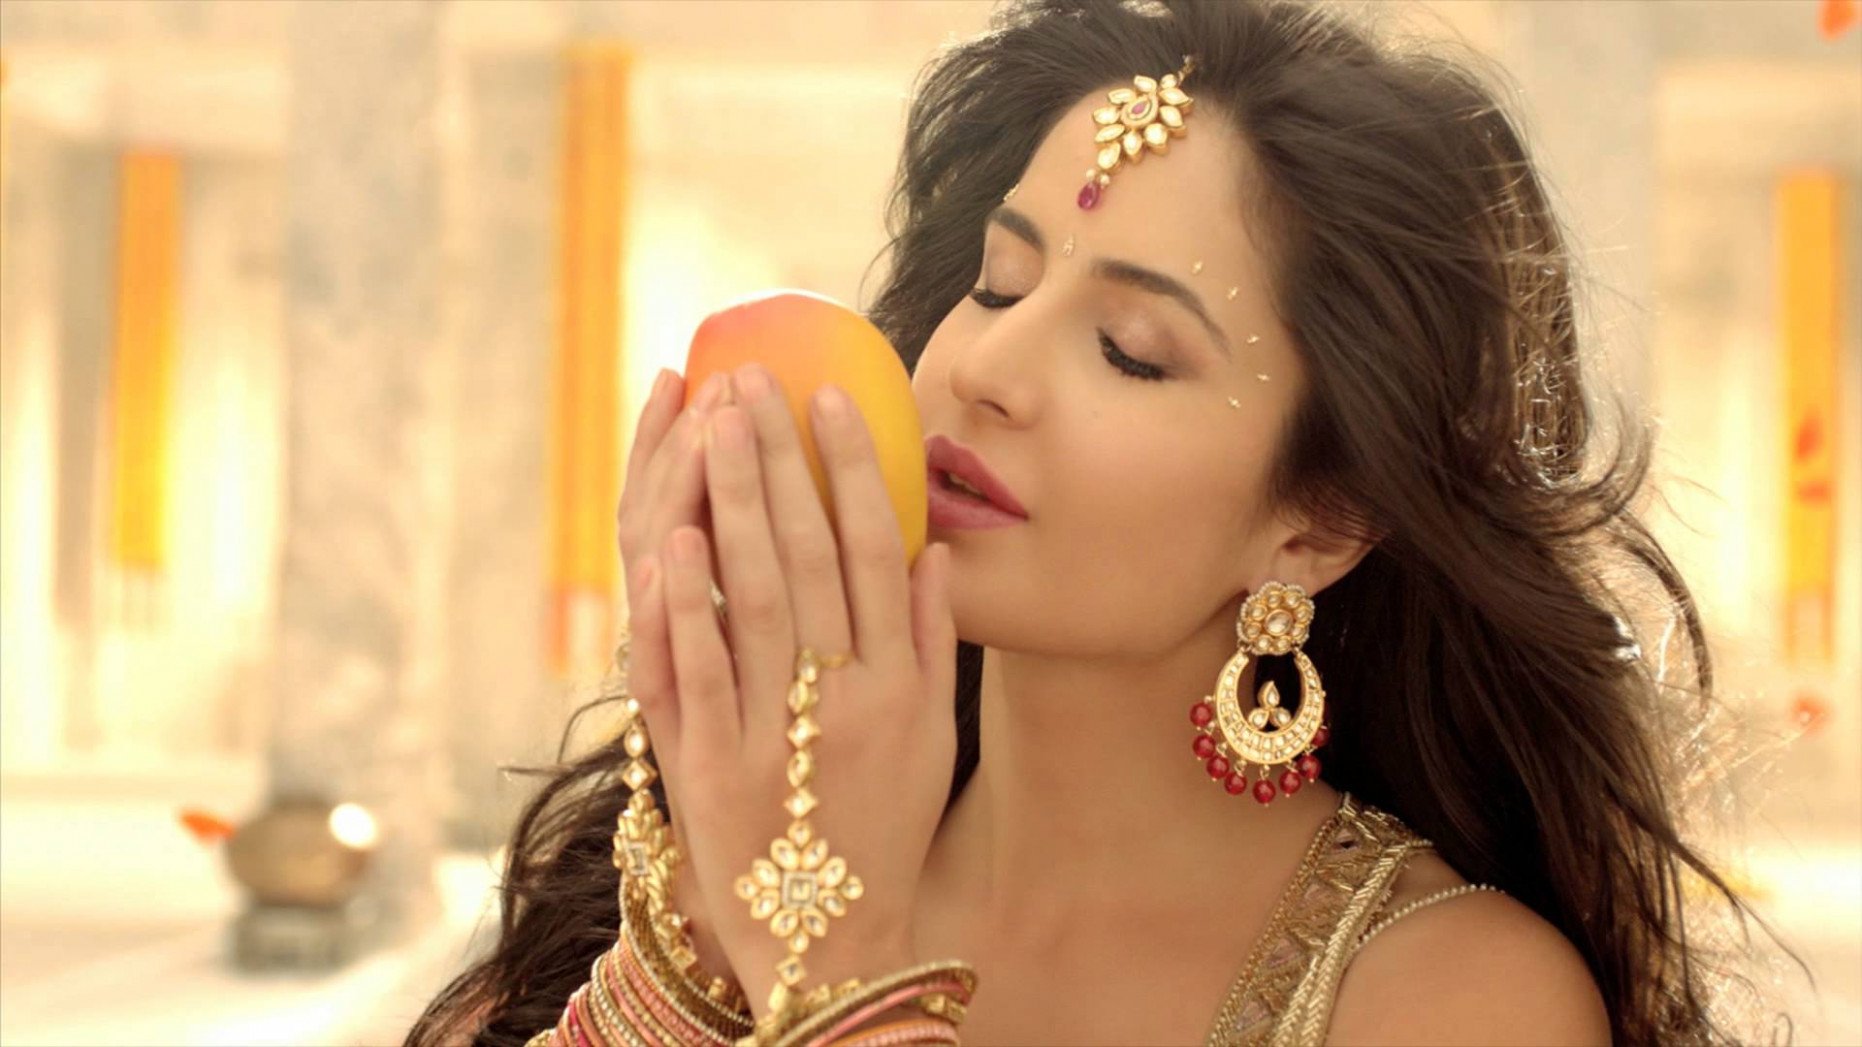 INDIA DIVA » Katrina Kaif becomes Tropicana first-ever ...